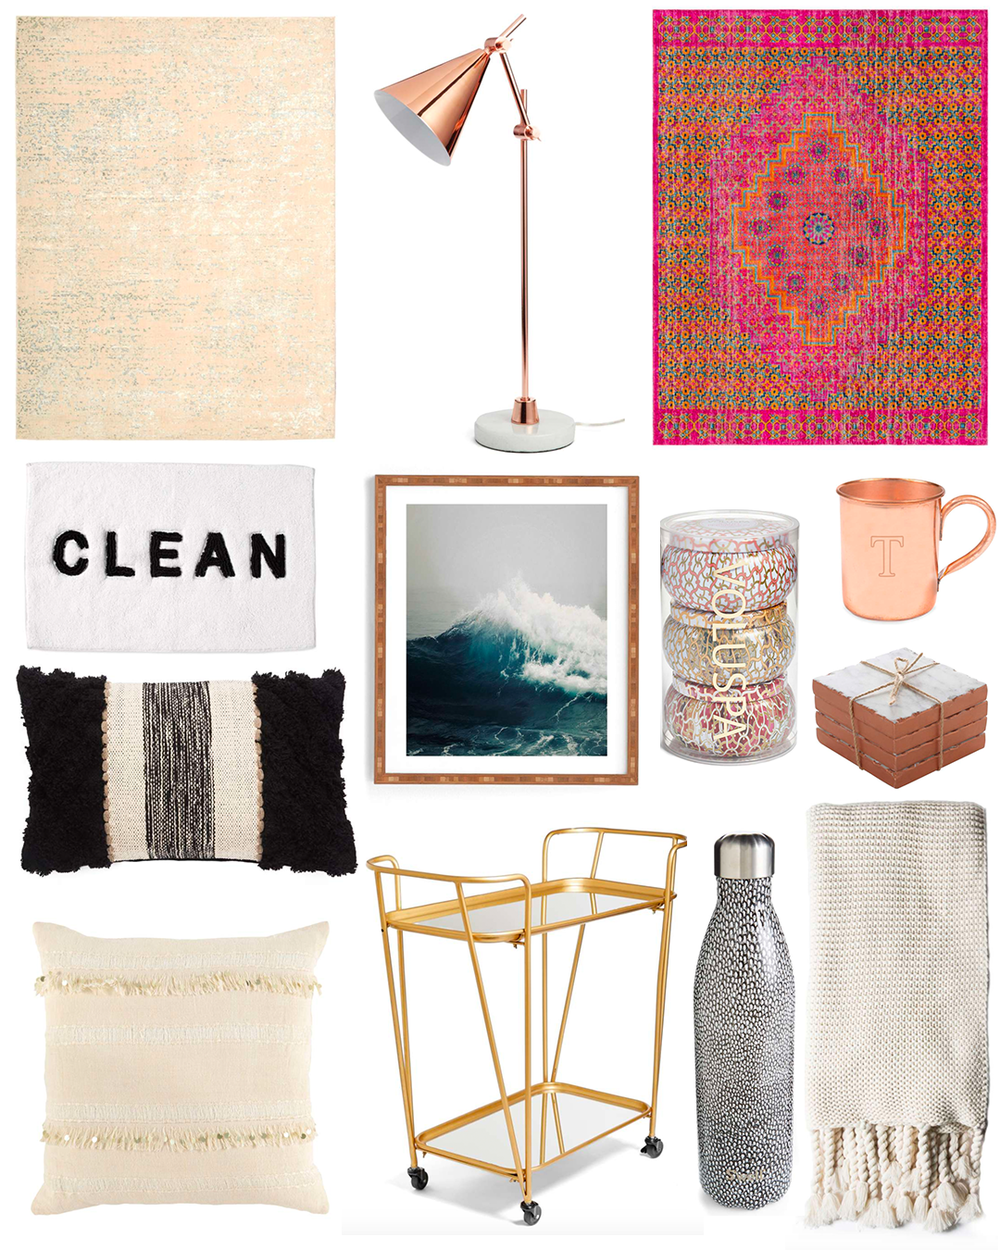 nordstrom anniversary sale home decor - Home Decor For Sale